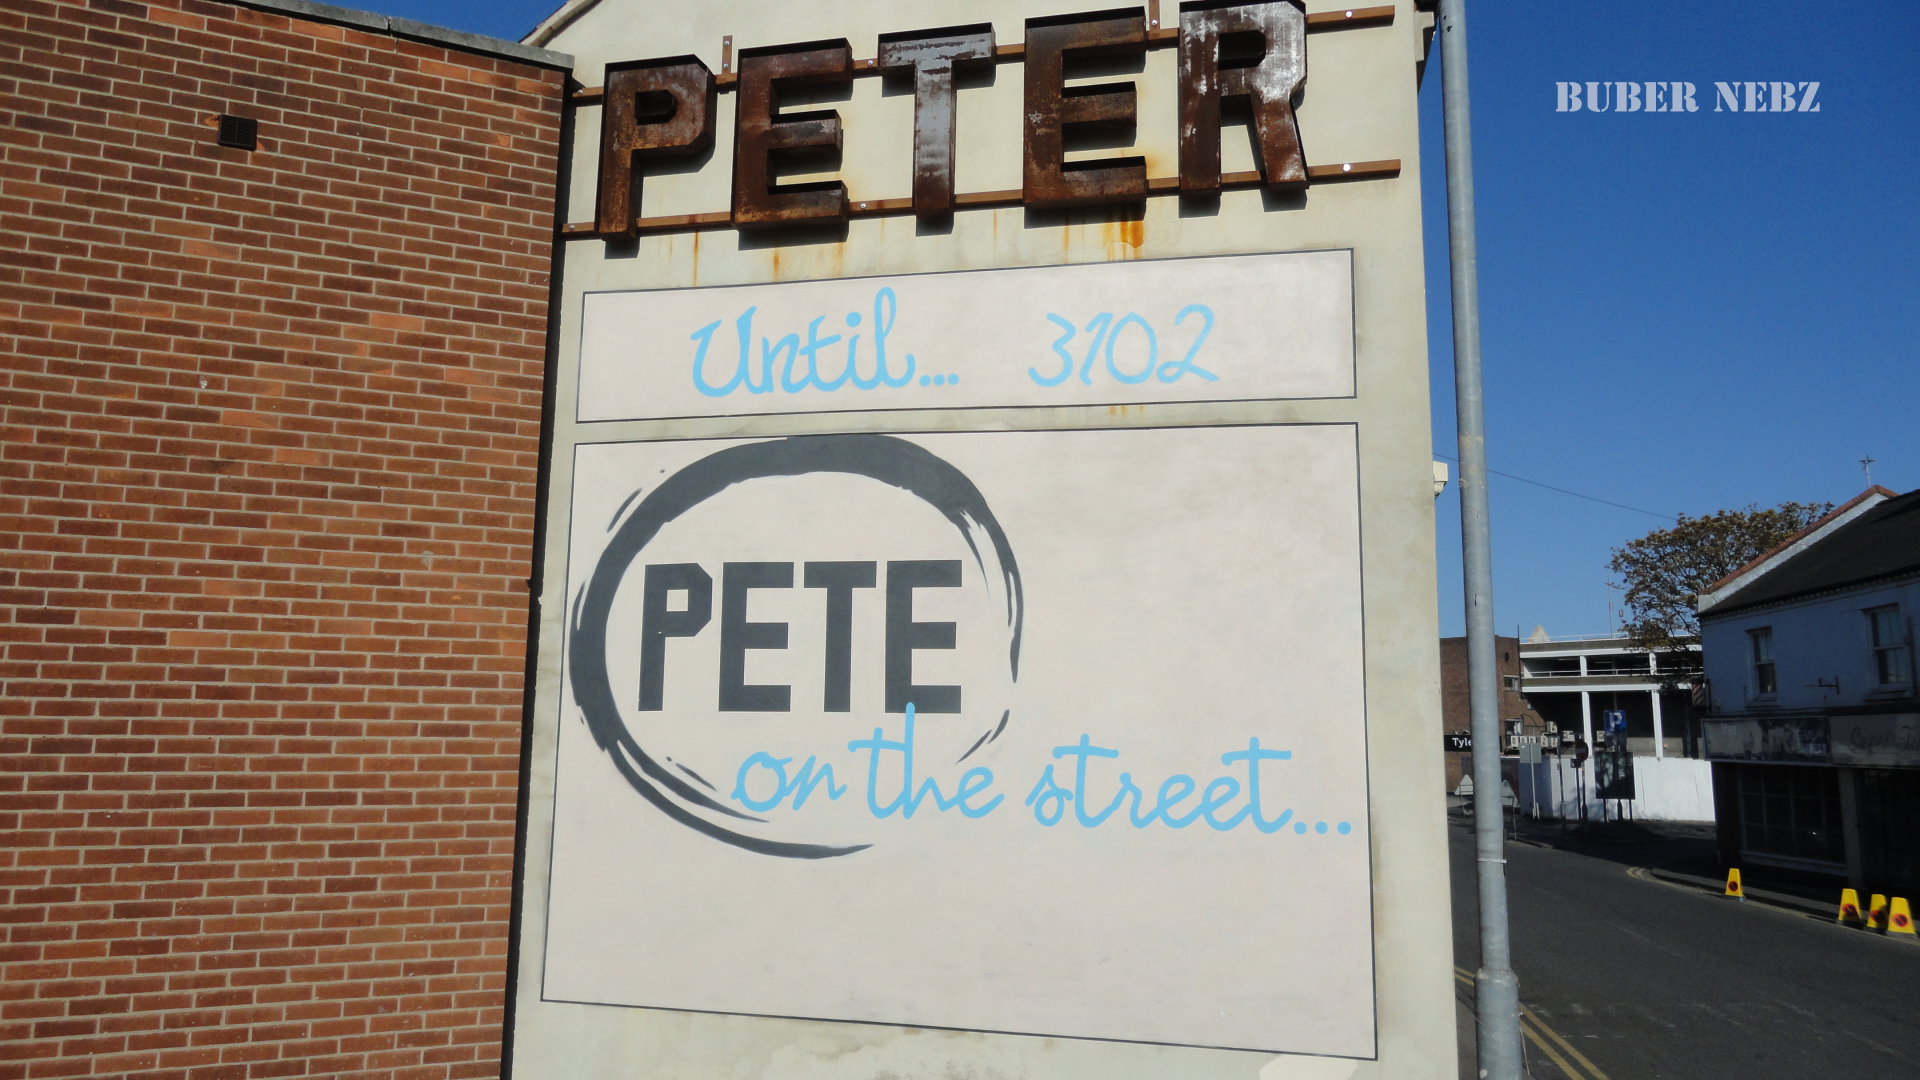 Pete On The Street